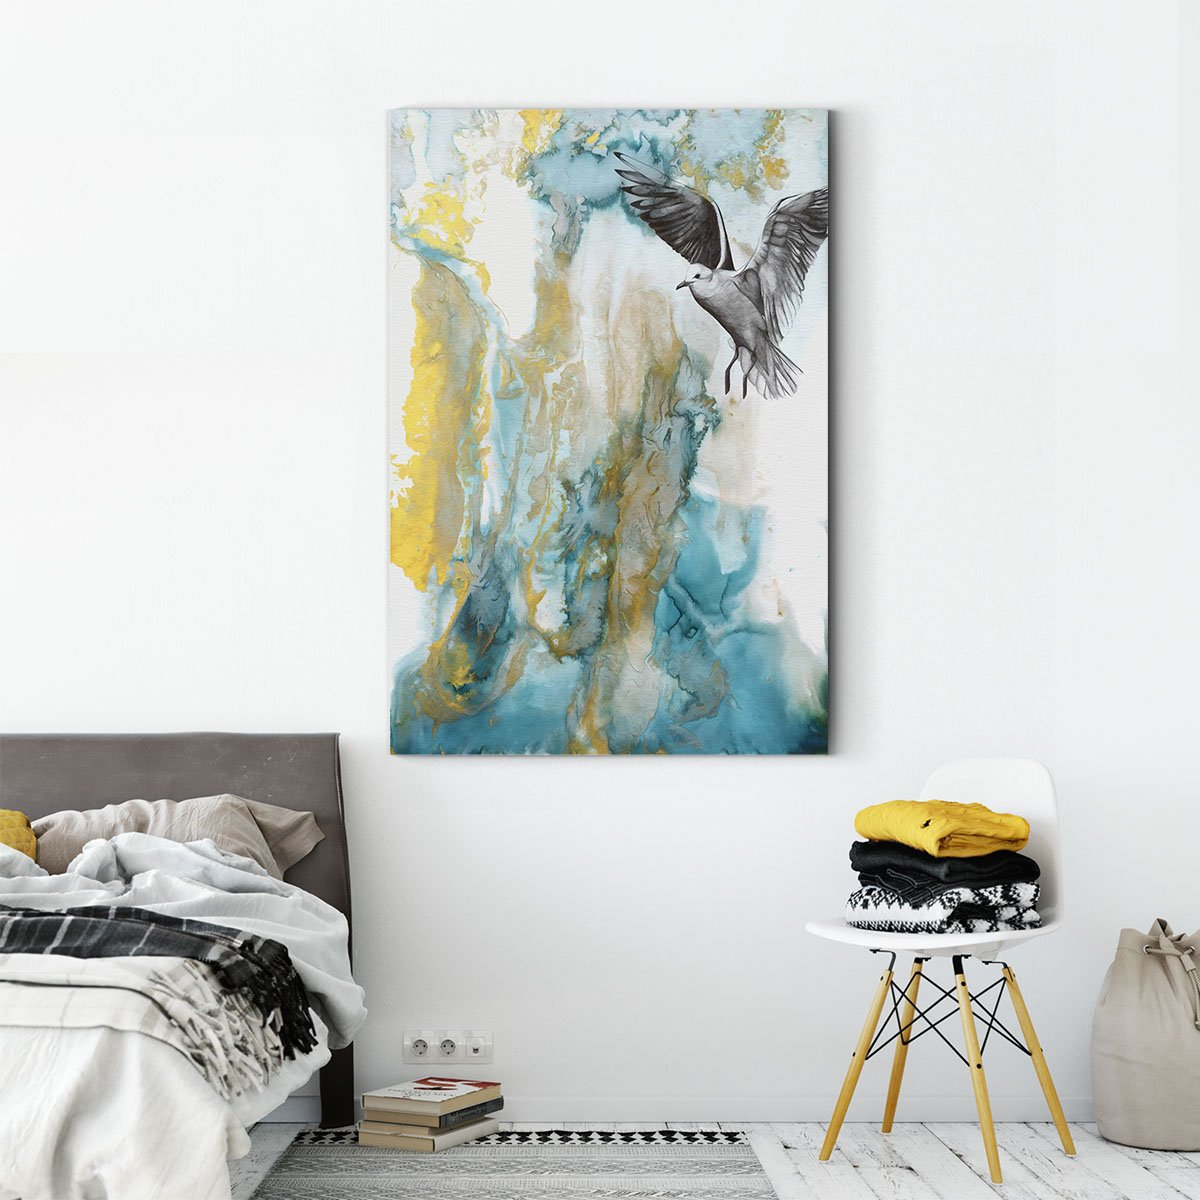 Soaring eagle abstract decorative painting 002